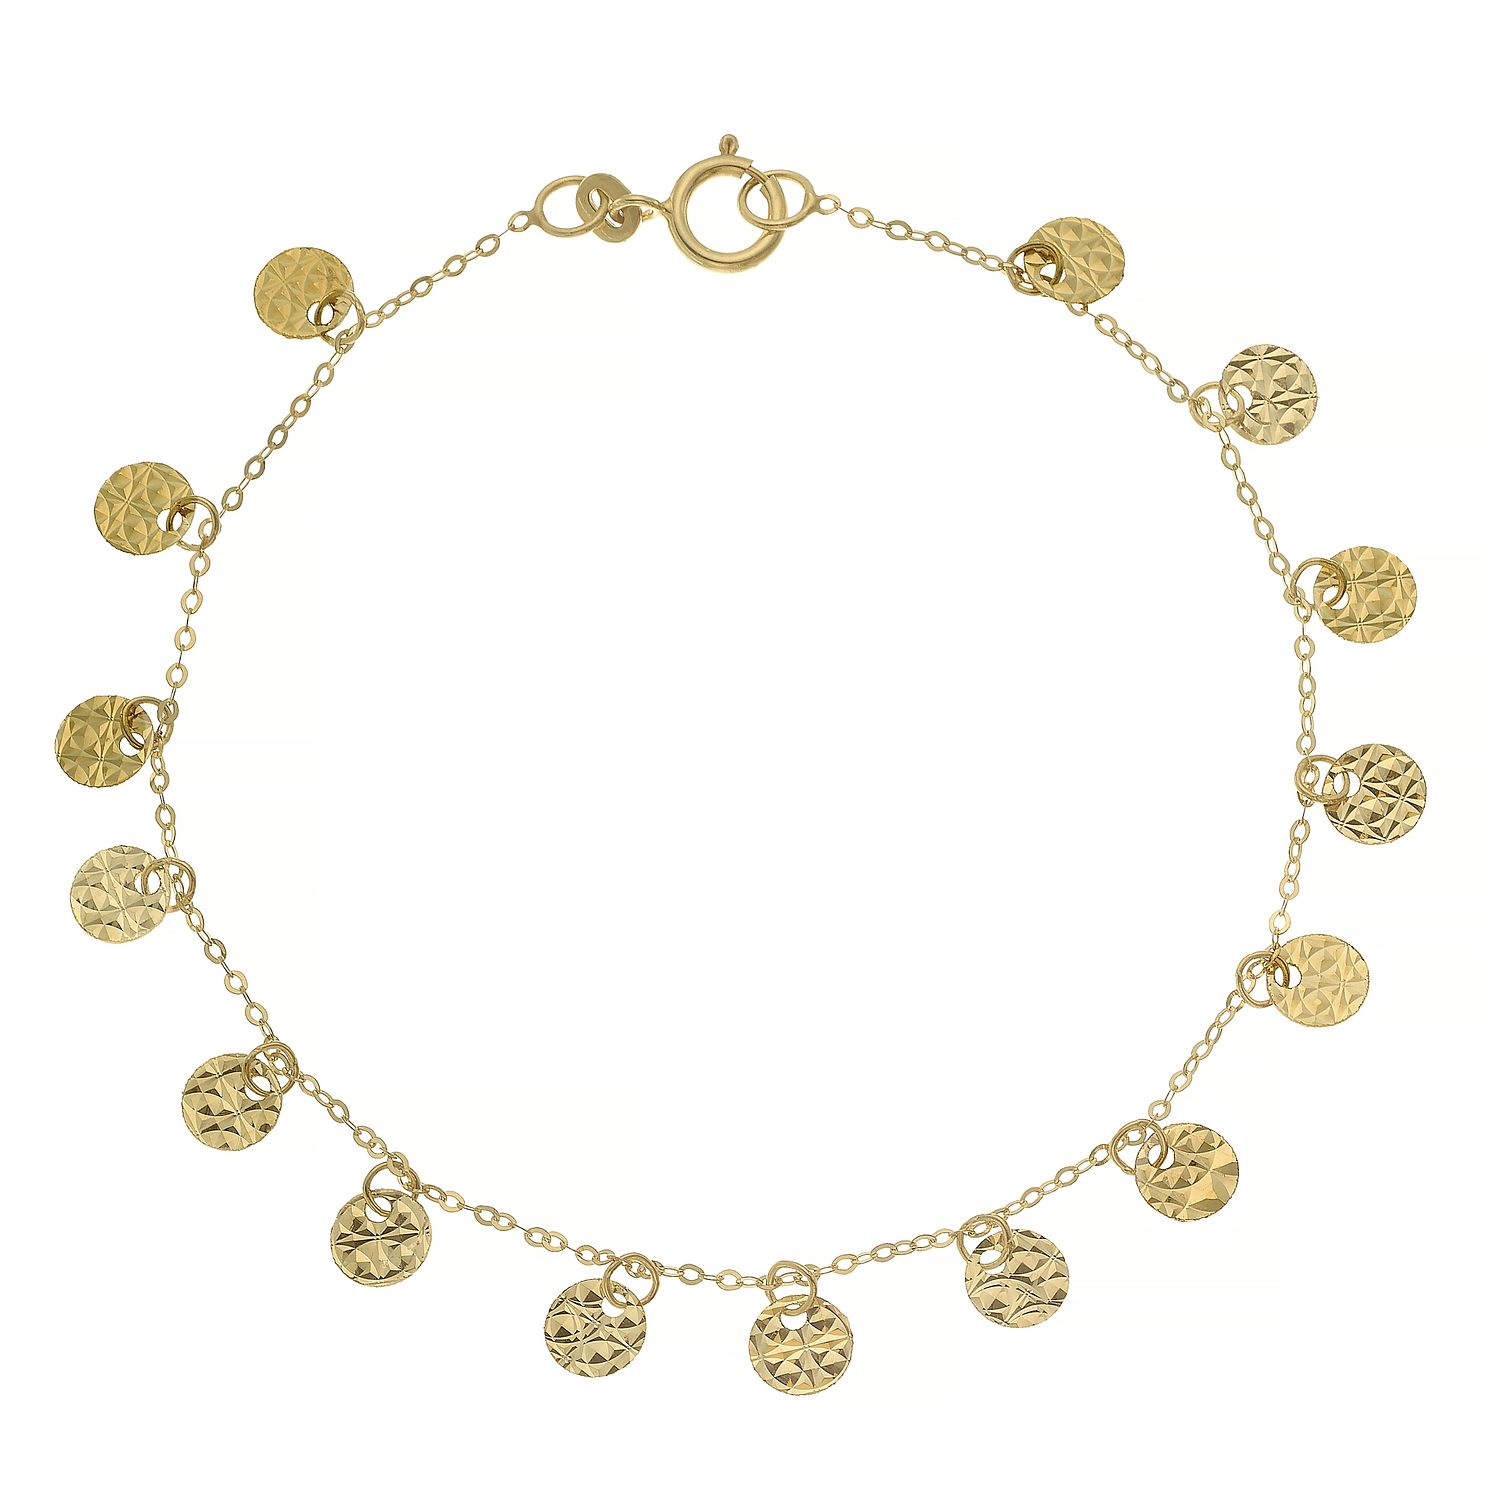 9ct Yellow Gold Diamond Cut Discs Charm Bracelet - Product number 4673069